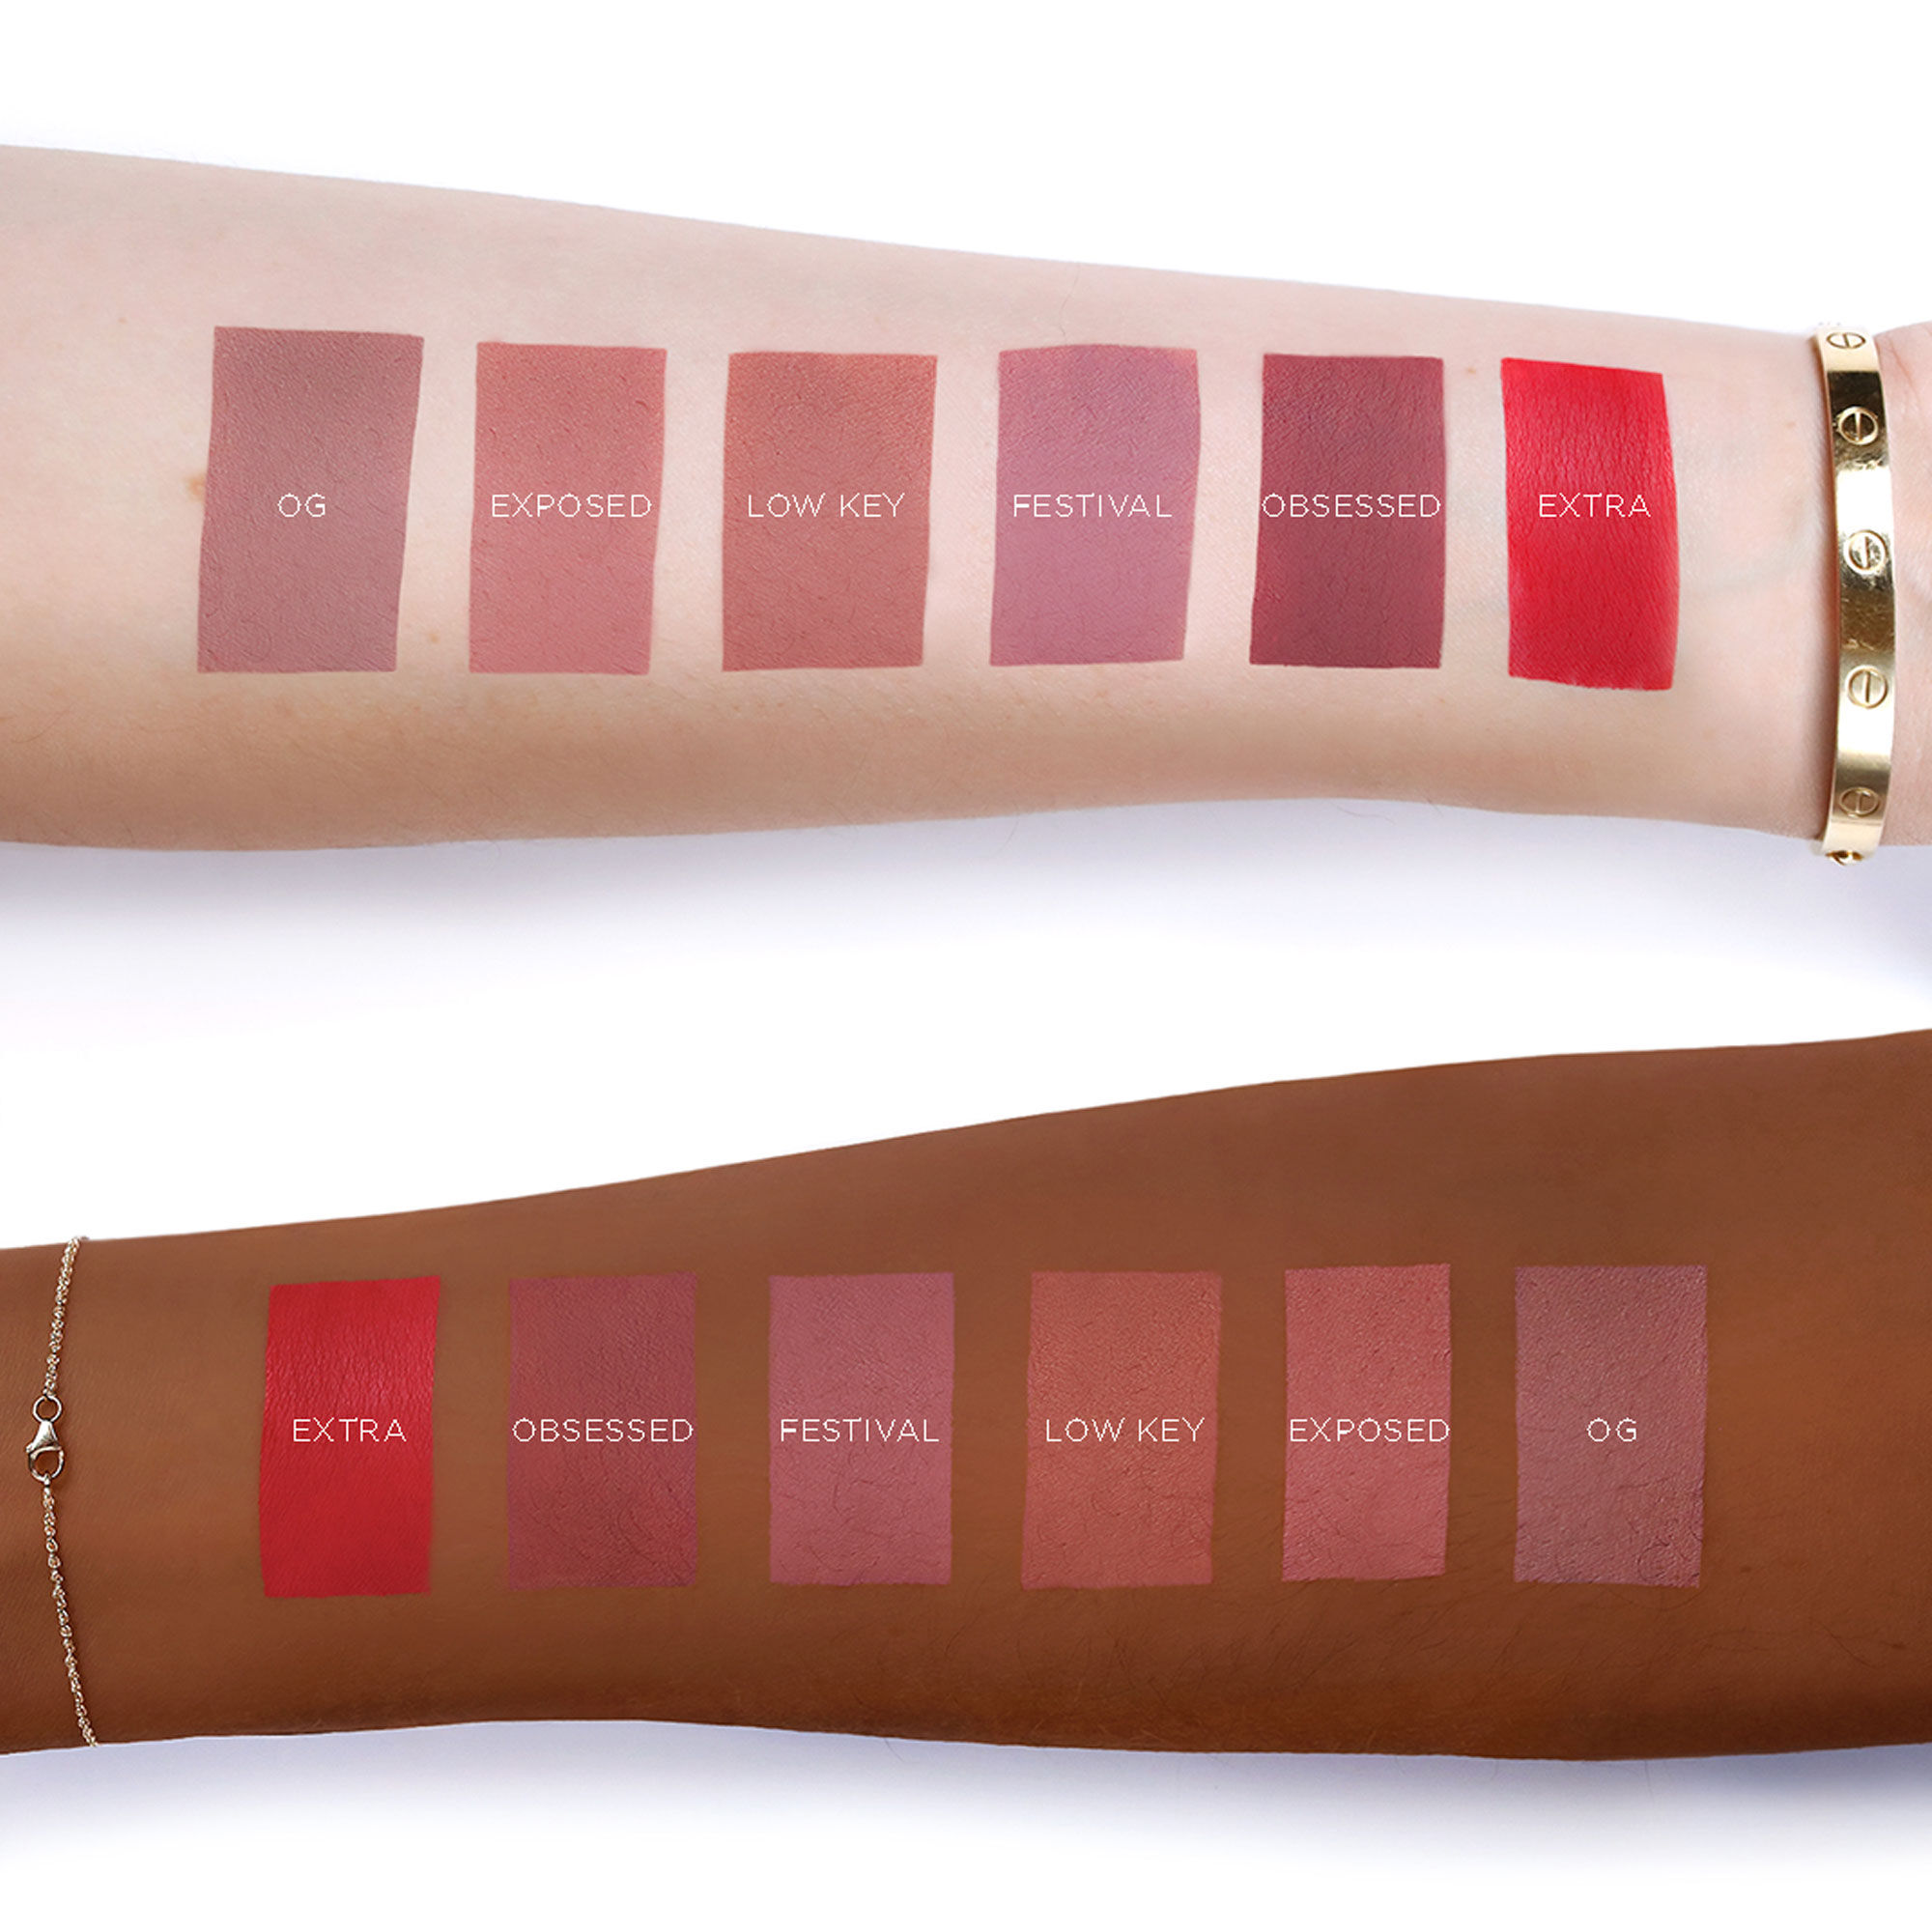 Tarteist Quick Dry Matte Lip Paint by Tarte #14